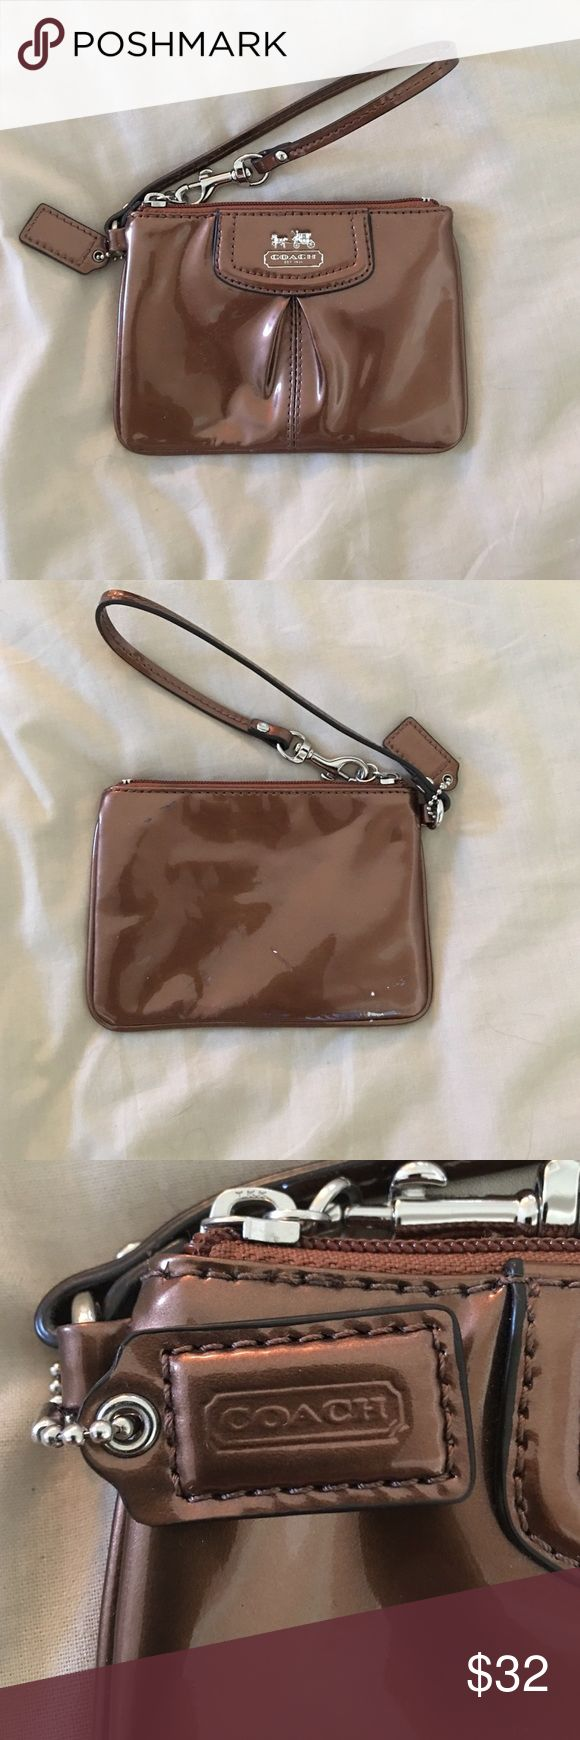 Baby Coach clutch Small coach clutch. Perfect for a night out. Never used but minor scratches Bags Clutches & Wristlets